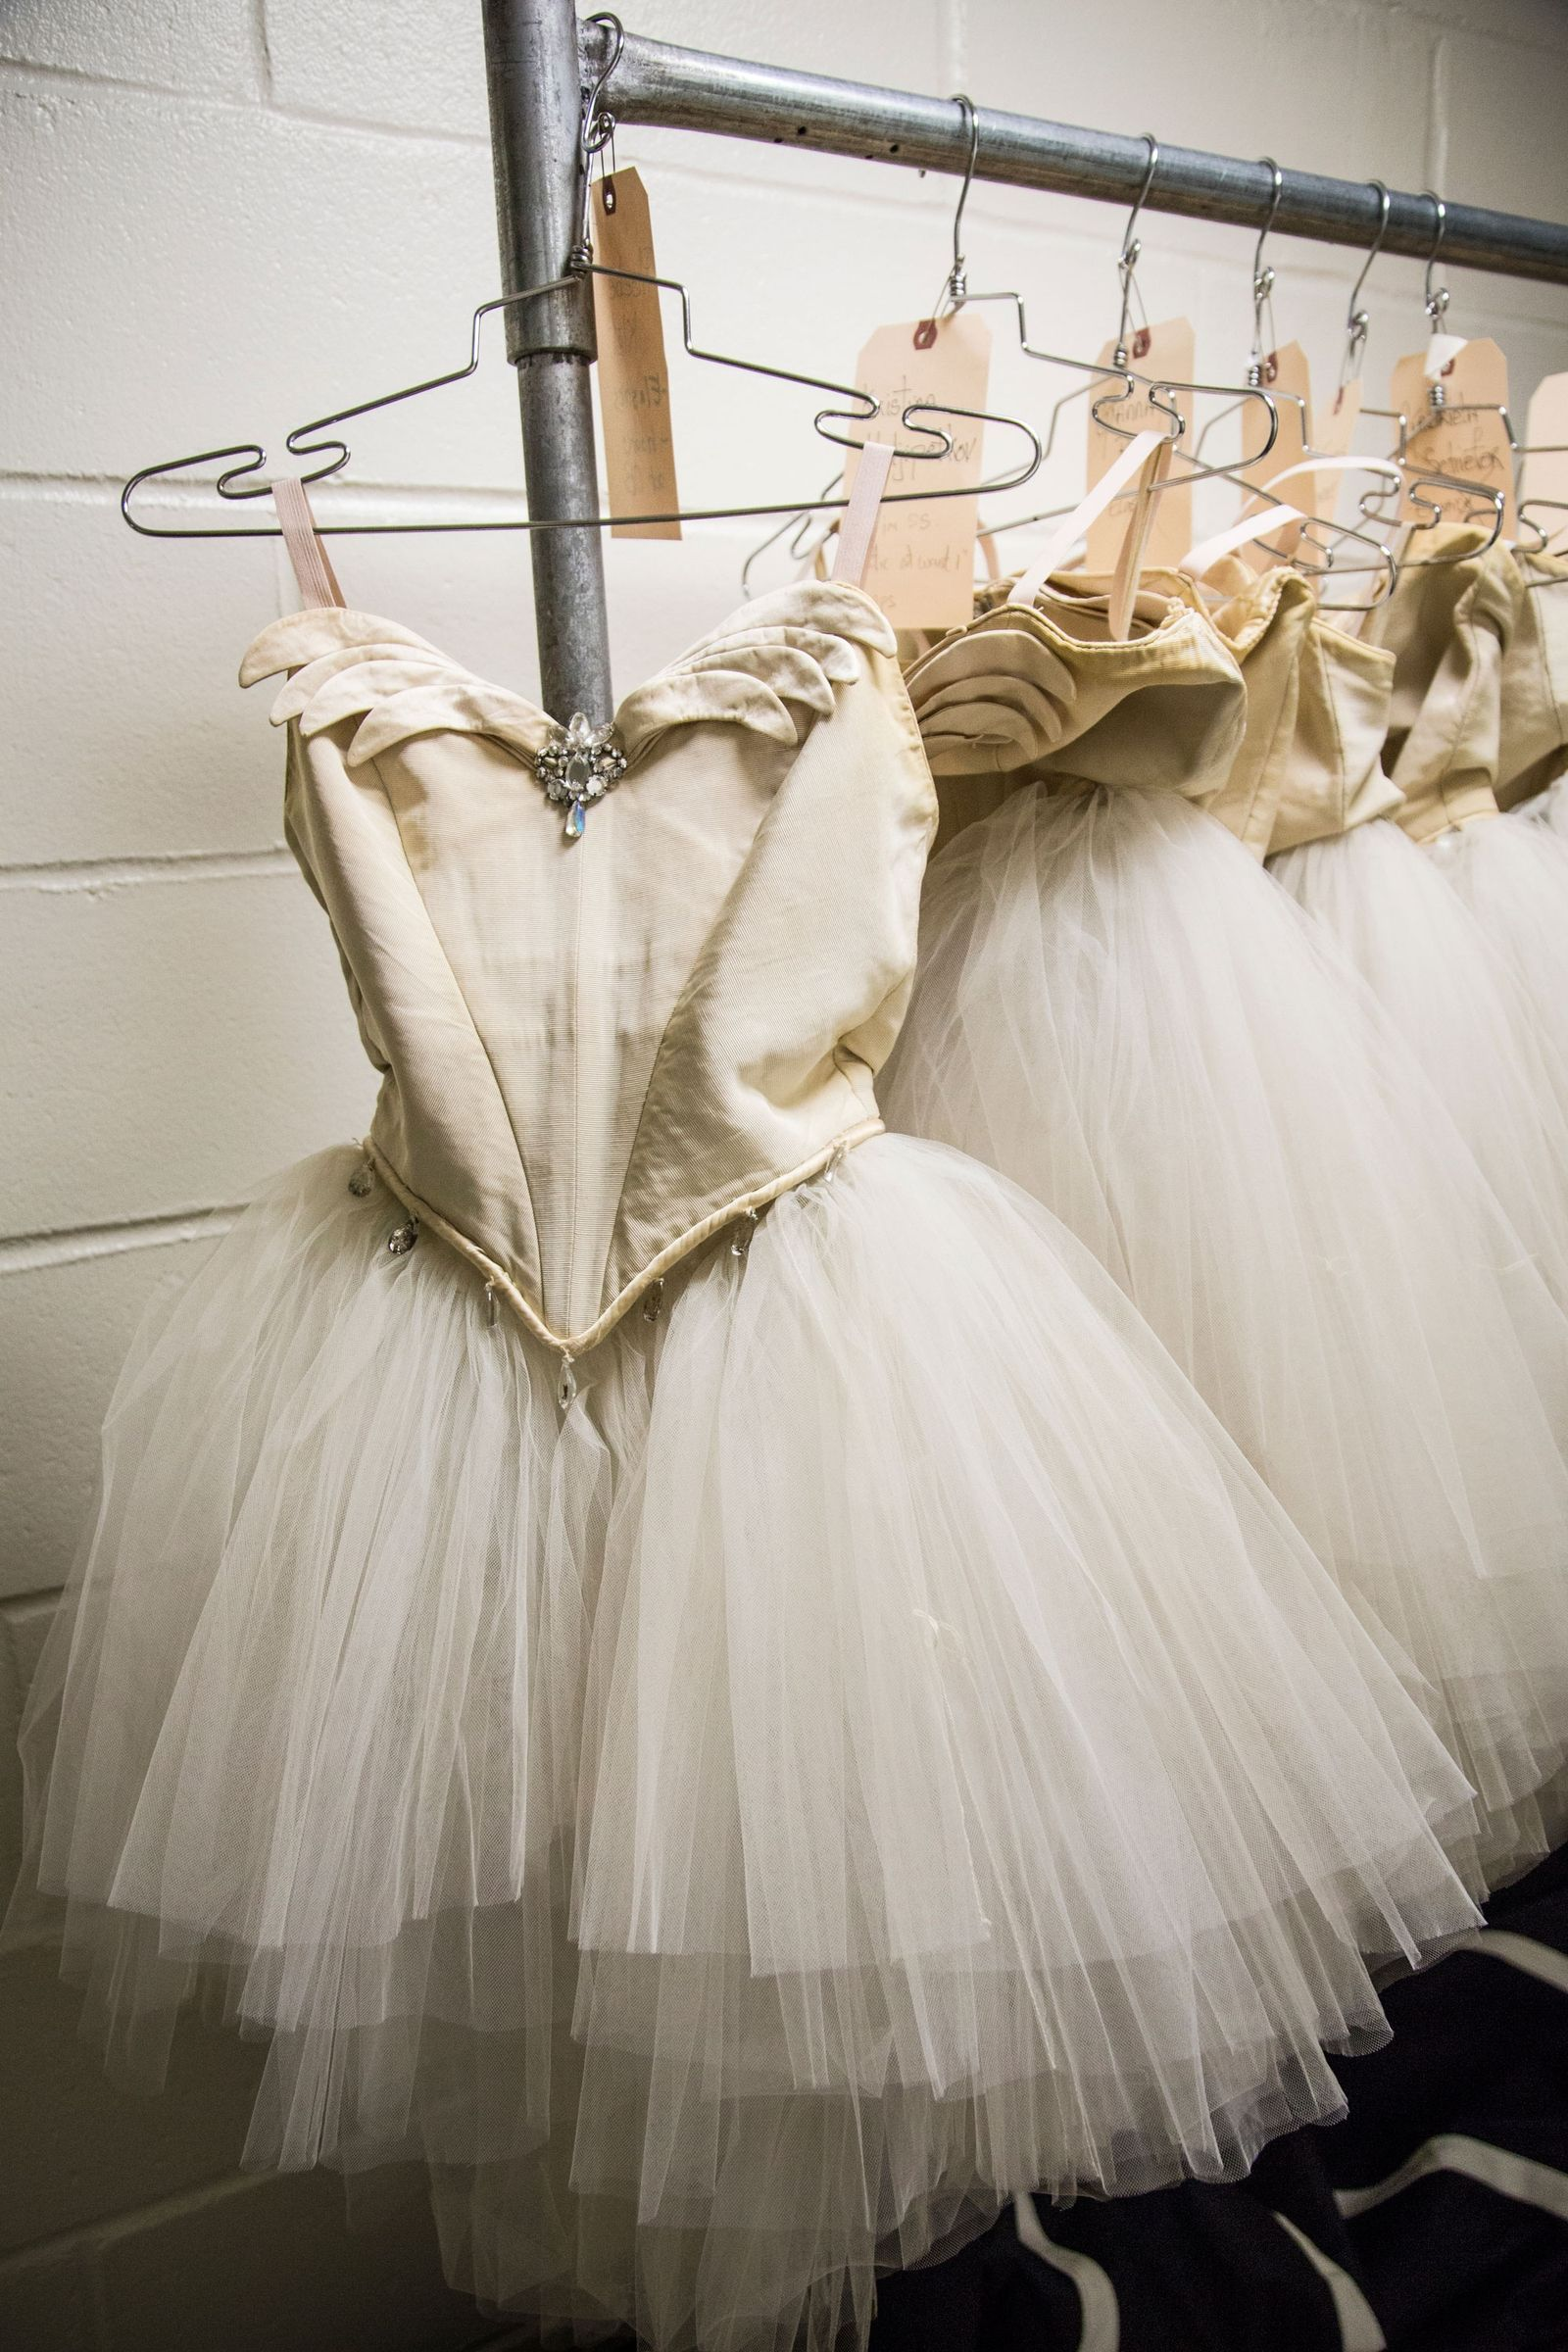 In The Wings: How New York City Ballet's Storied